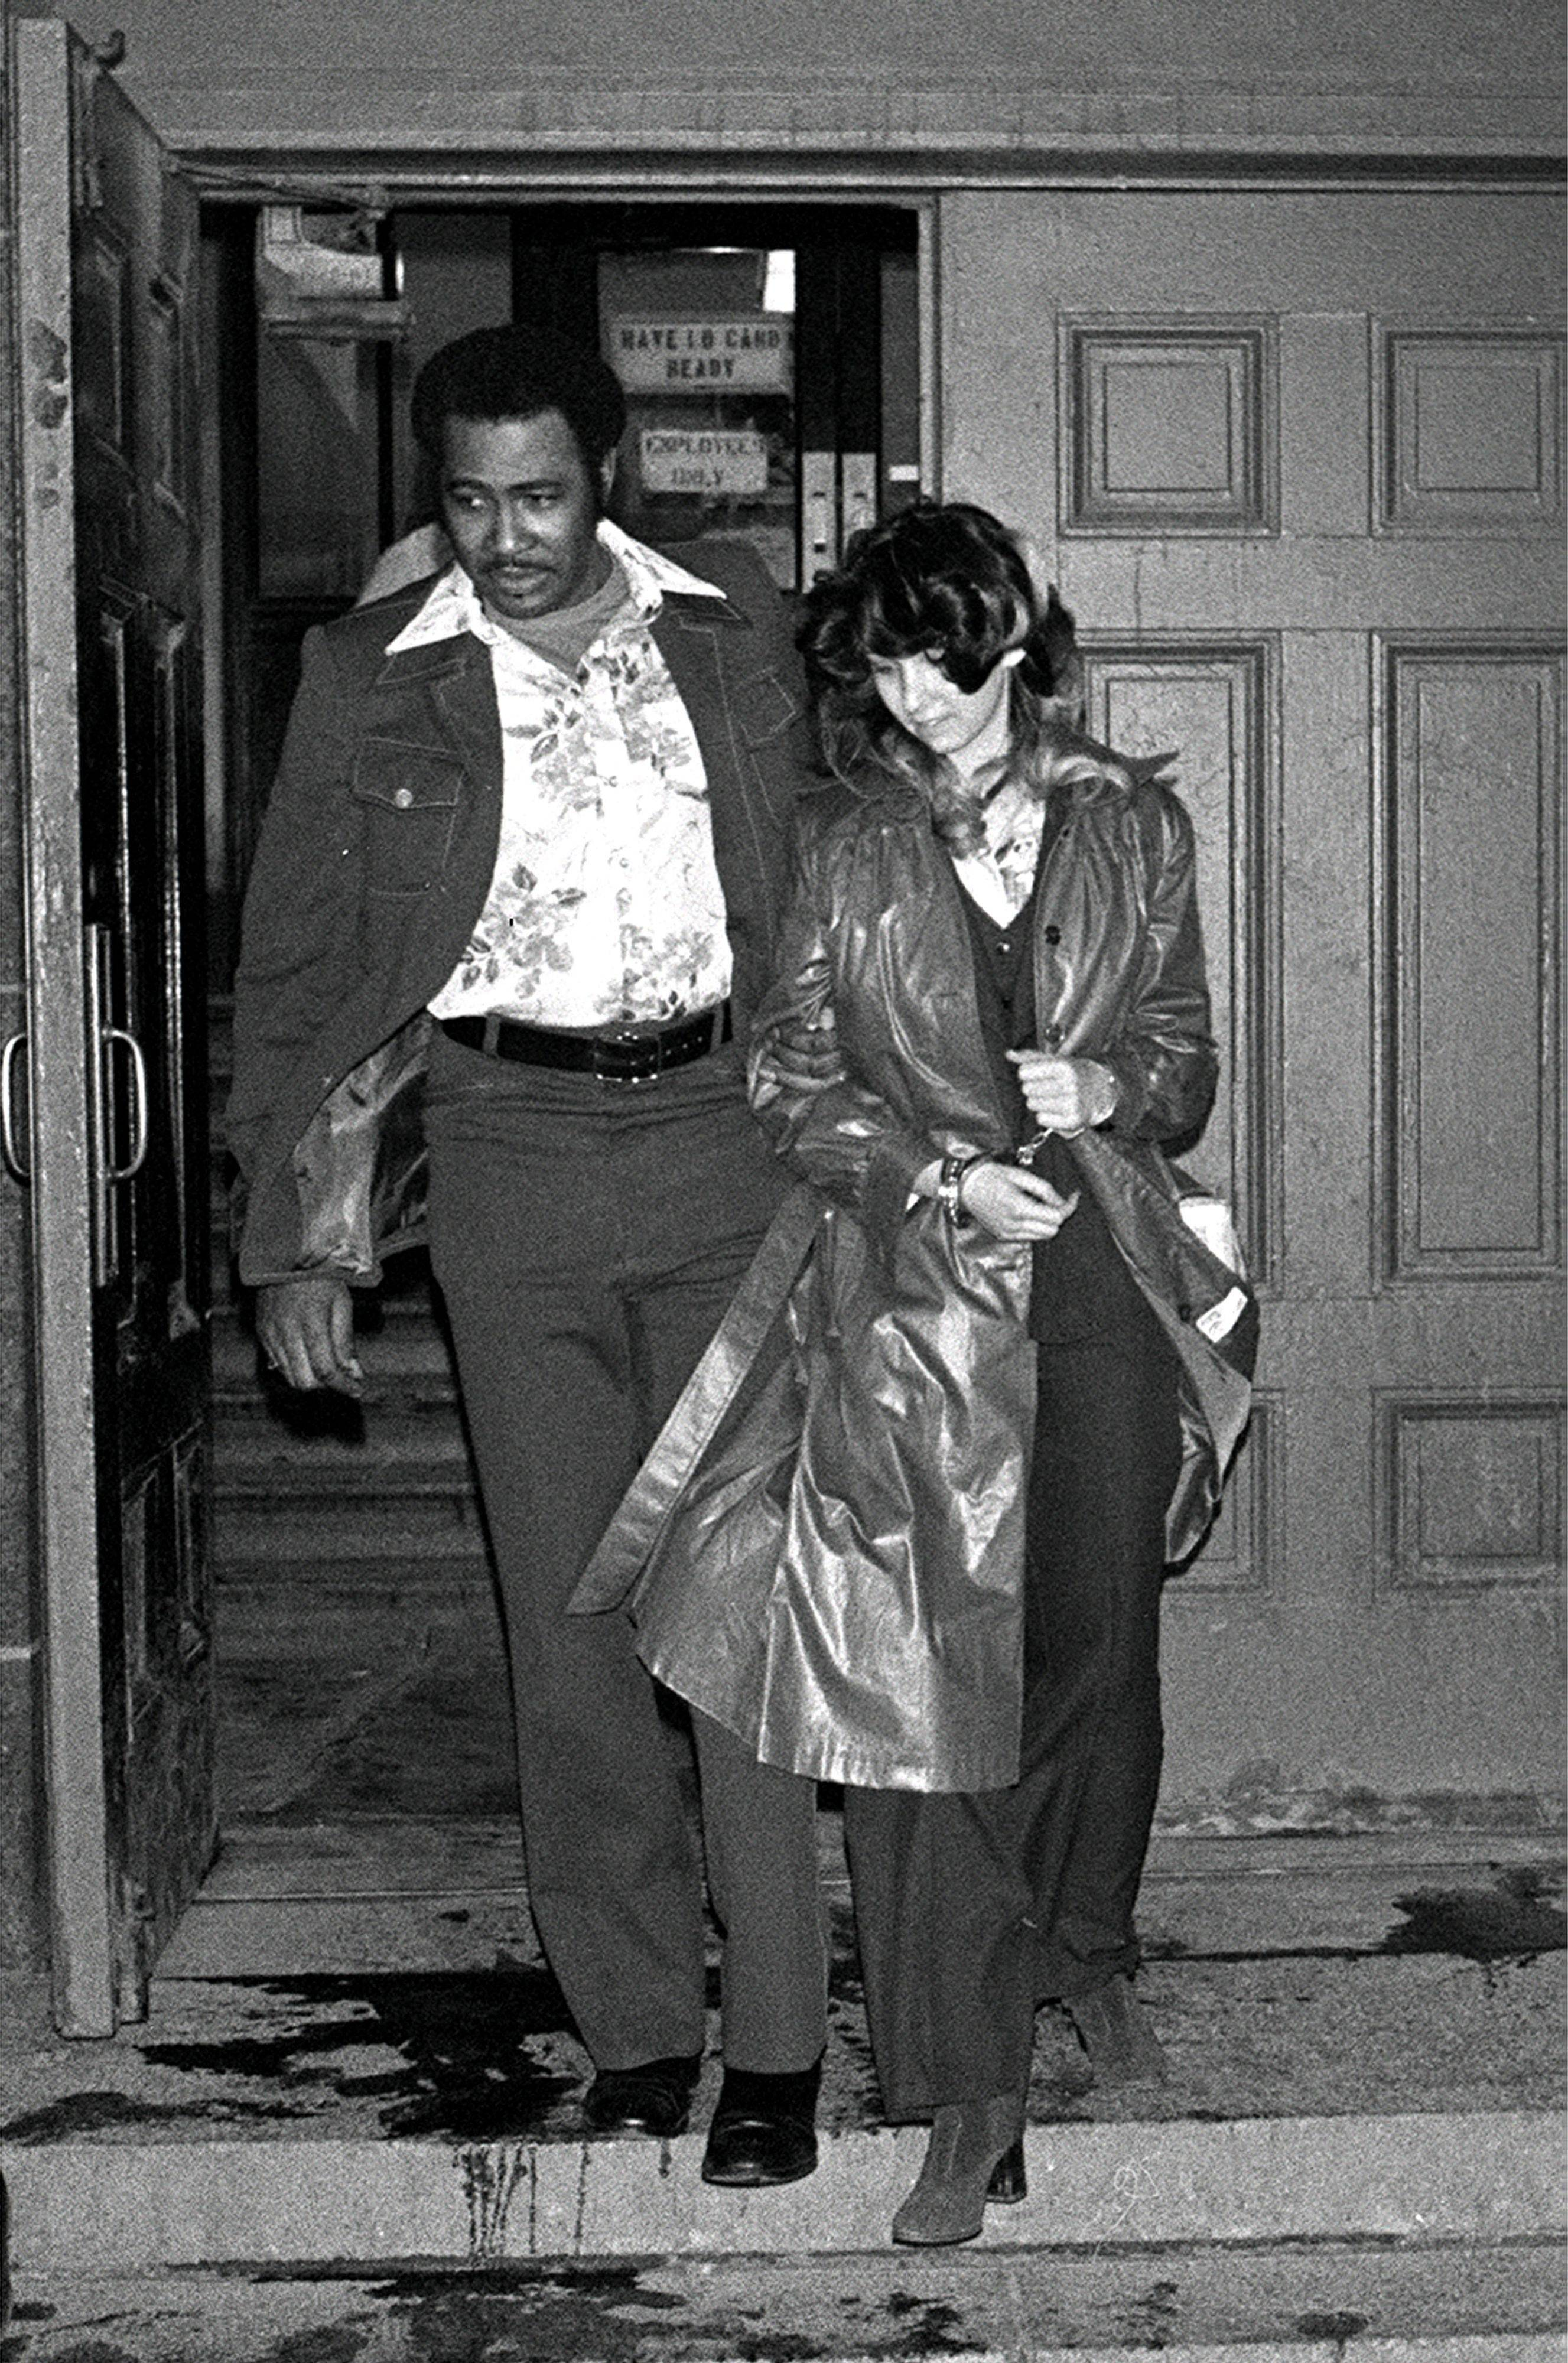 Patty Columbo leavingthe criminal courts building in 1977.